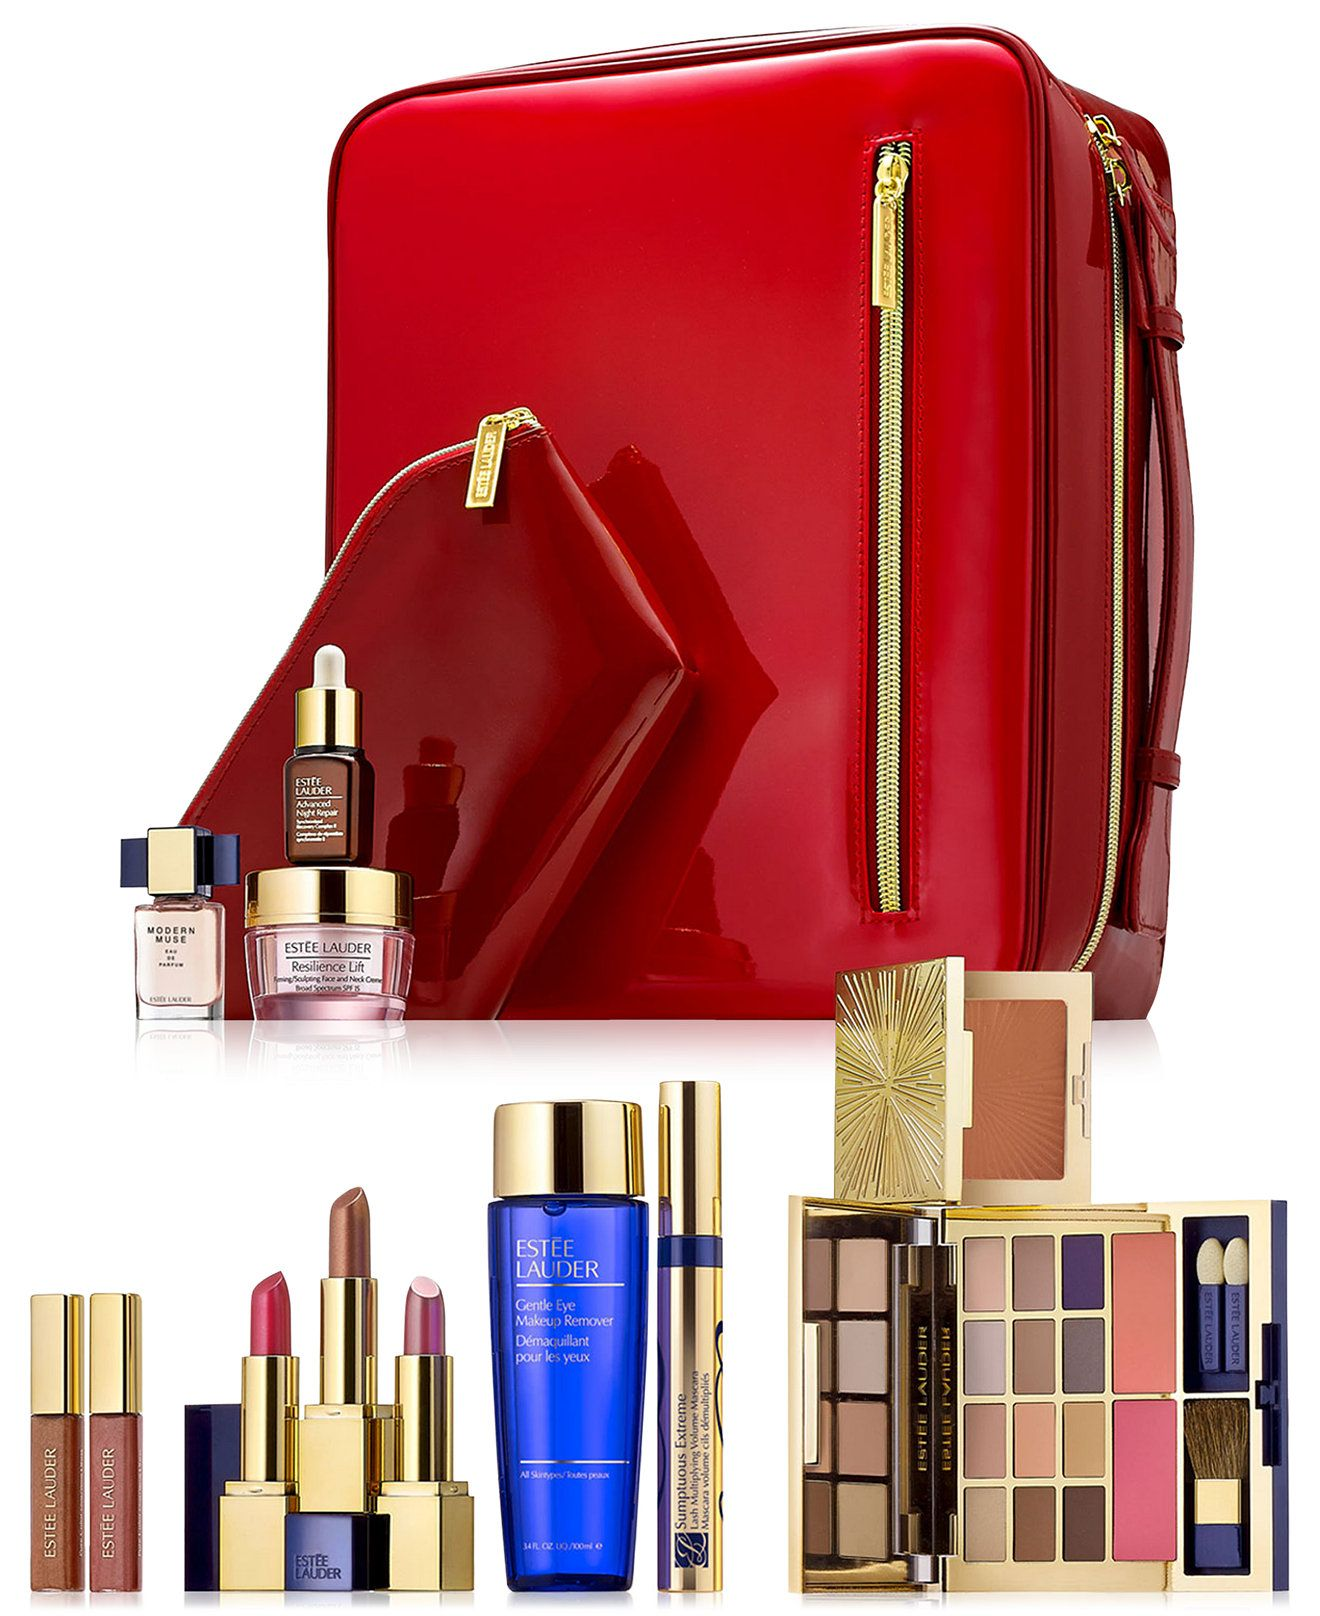 Estee Lauder The Color Edit Set Only 59 50 With Estee Lauder Fragrance Purchase Fragrance Be Estee Lauder Fragrances Gifts For Makeup Lovers Estee Lauder